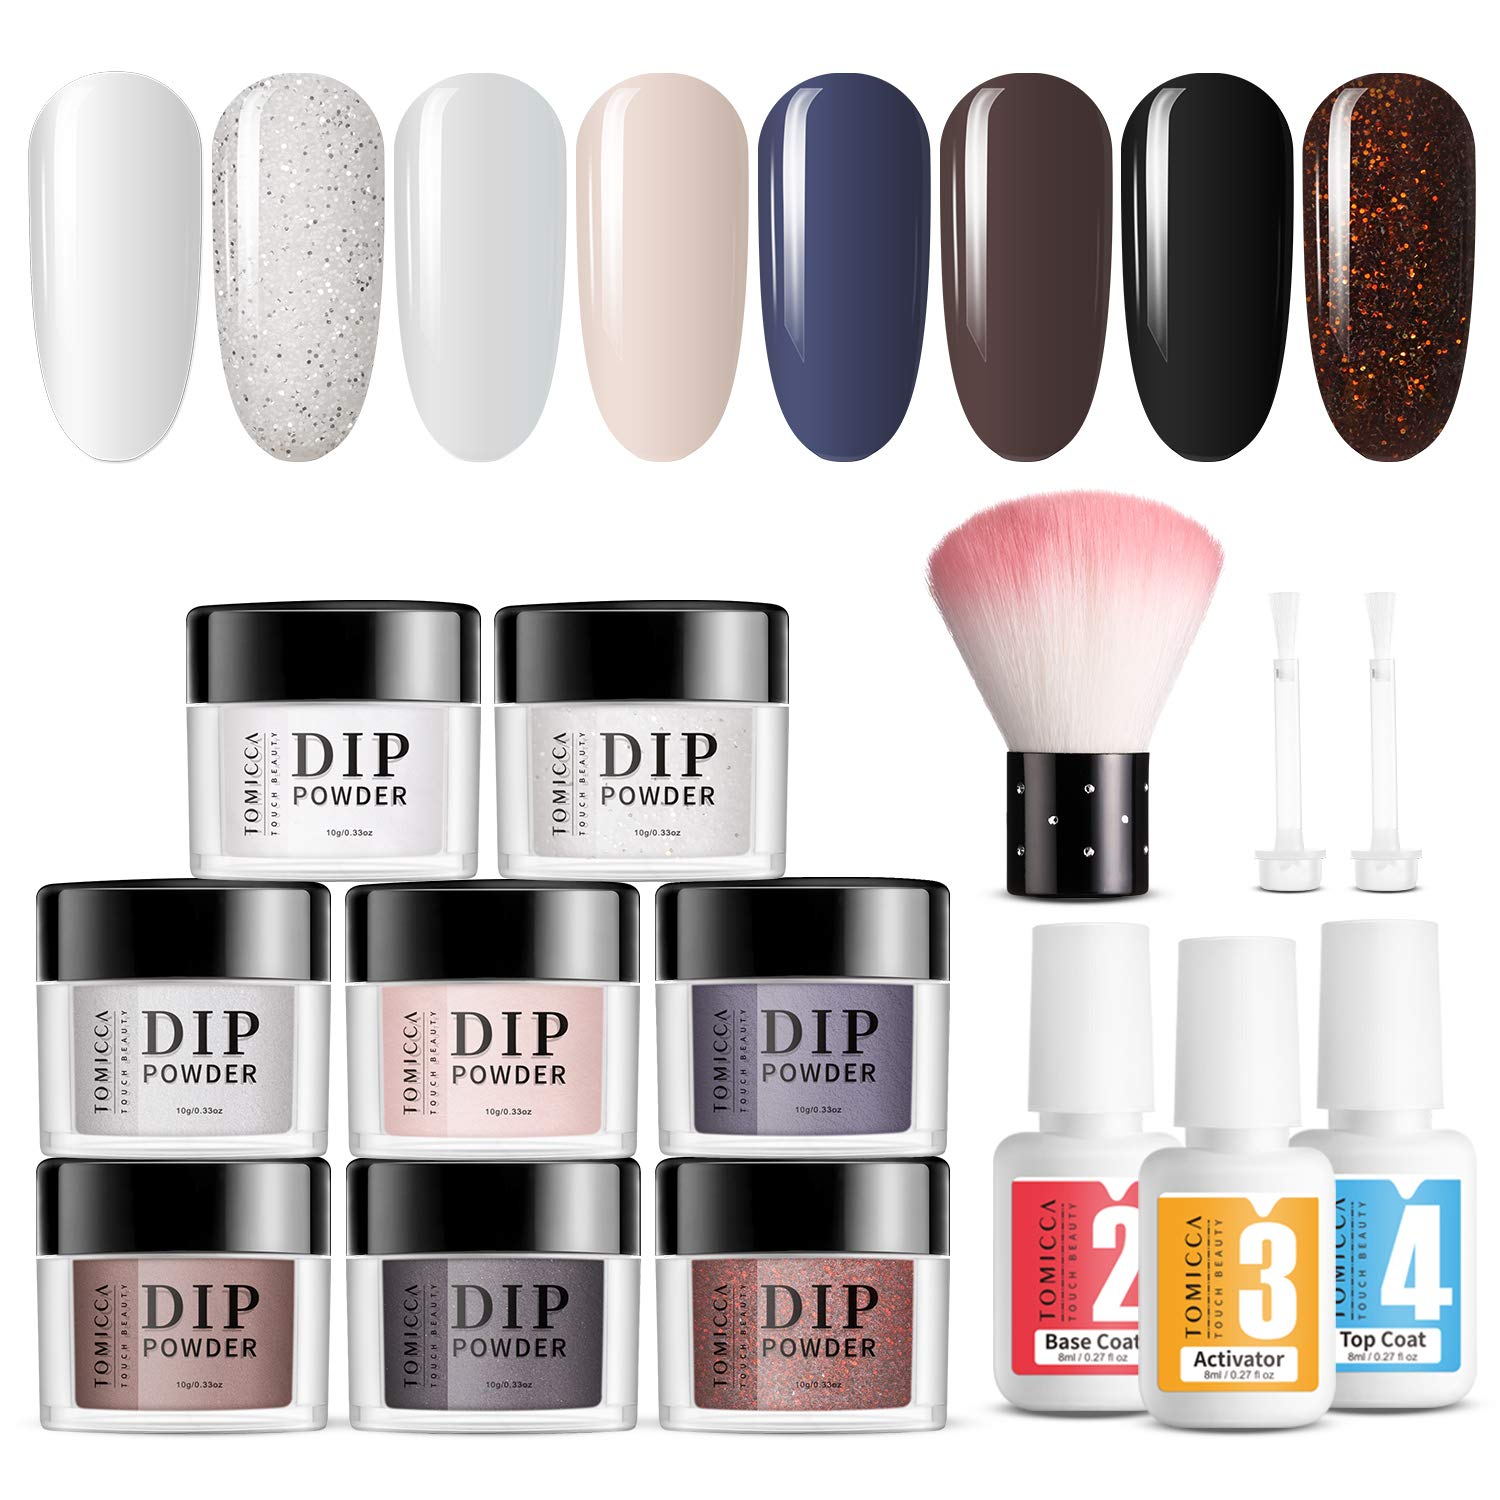 TOMICCA Dip Powder Nail Starter Kit 8 Colors for French Manicure Nail Art Set White Black Dark Blue Dipping Powder System Starter Essential Kit, 3Pcs 8ML Liquid, No UV Lamp Required, Easy to Apply